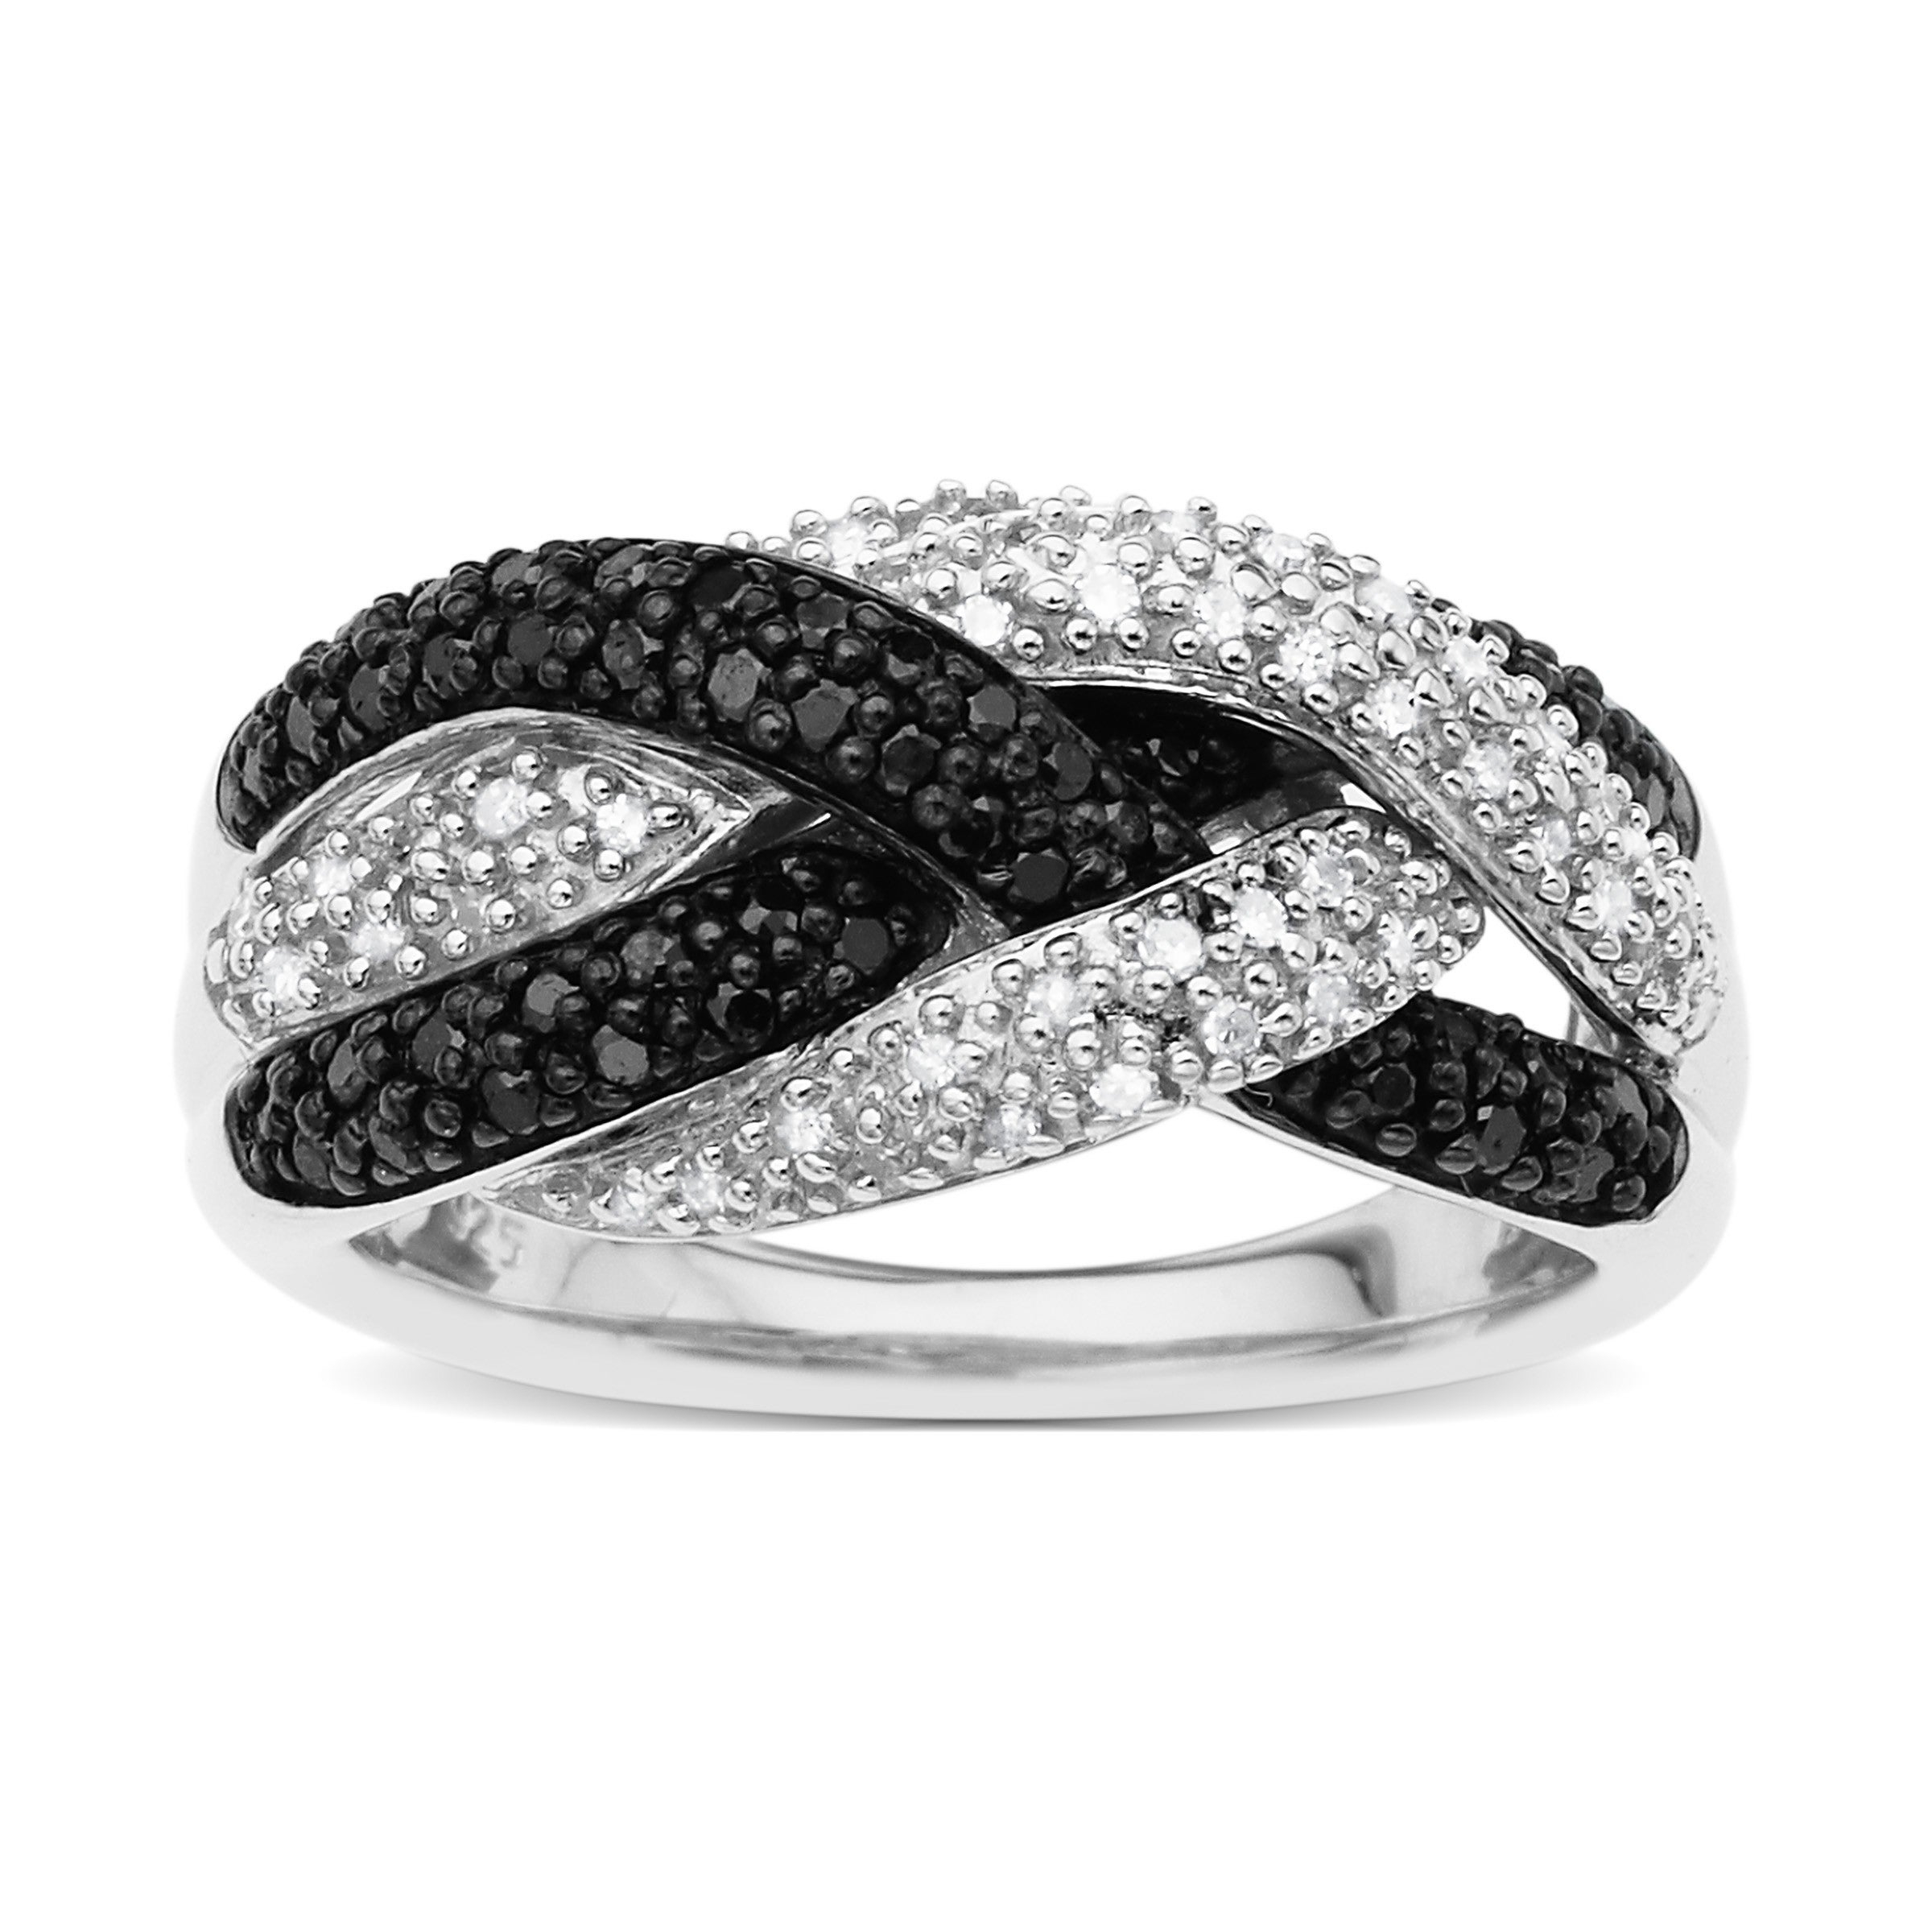 1/2 Ct Black And White Diamond Ring In Sterling Silver – Size 7 Inside 2020 Enhanced Black And White Diamond Anniversary Bands In Sterling Silver (View 2 of 25)